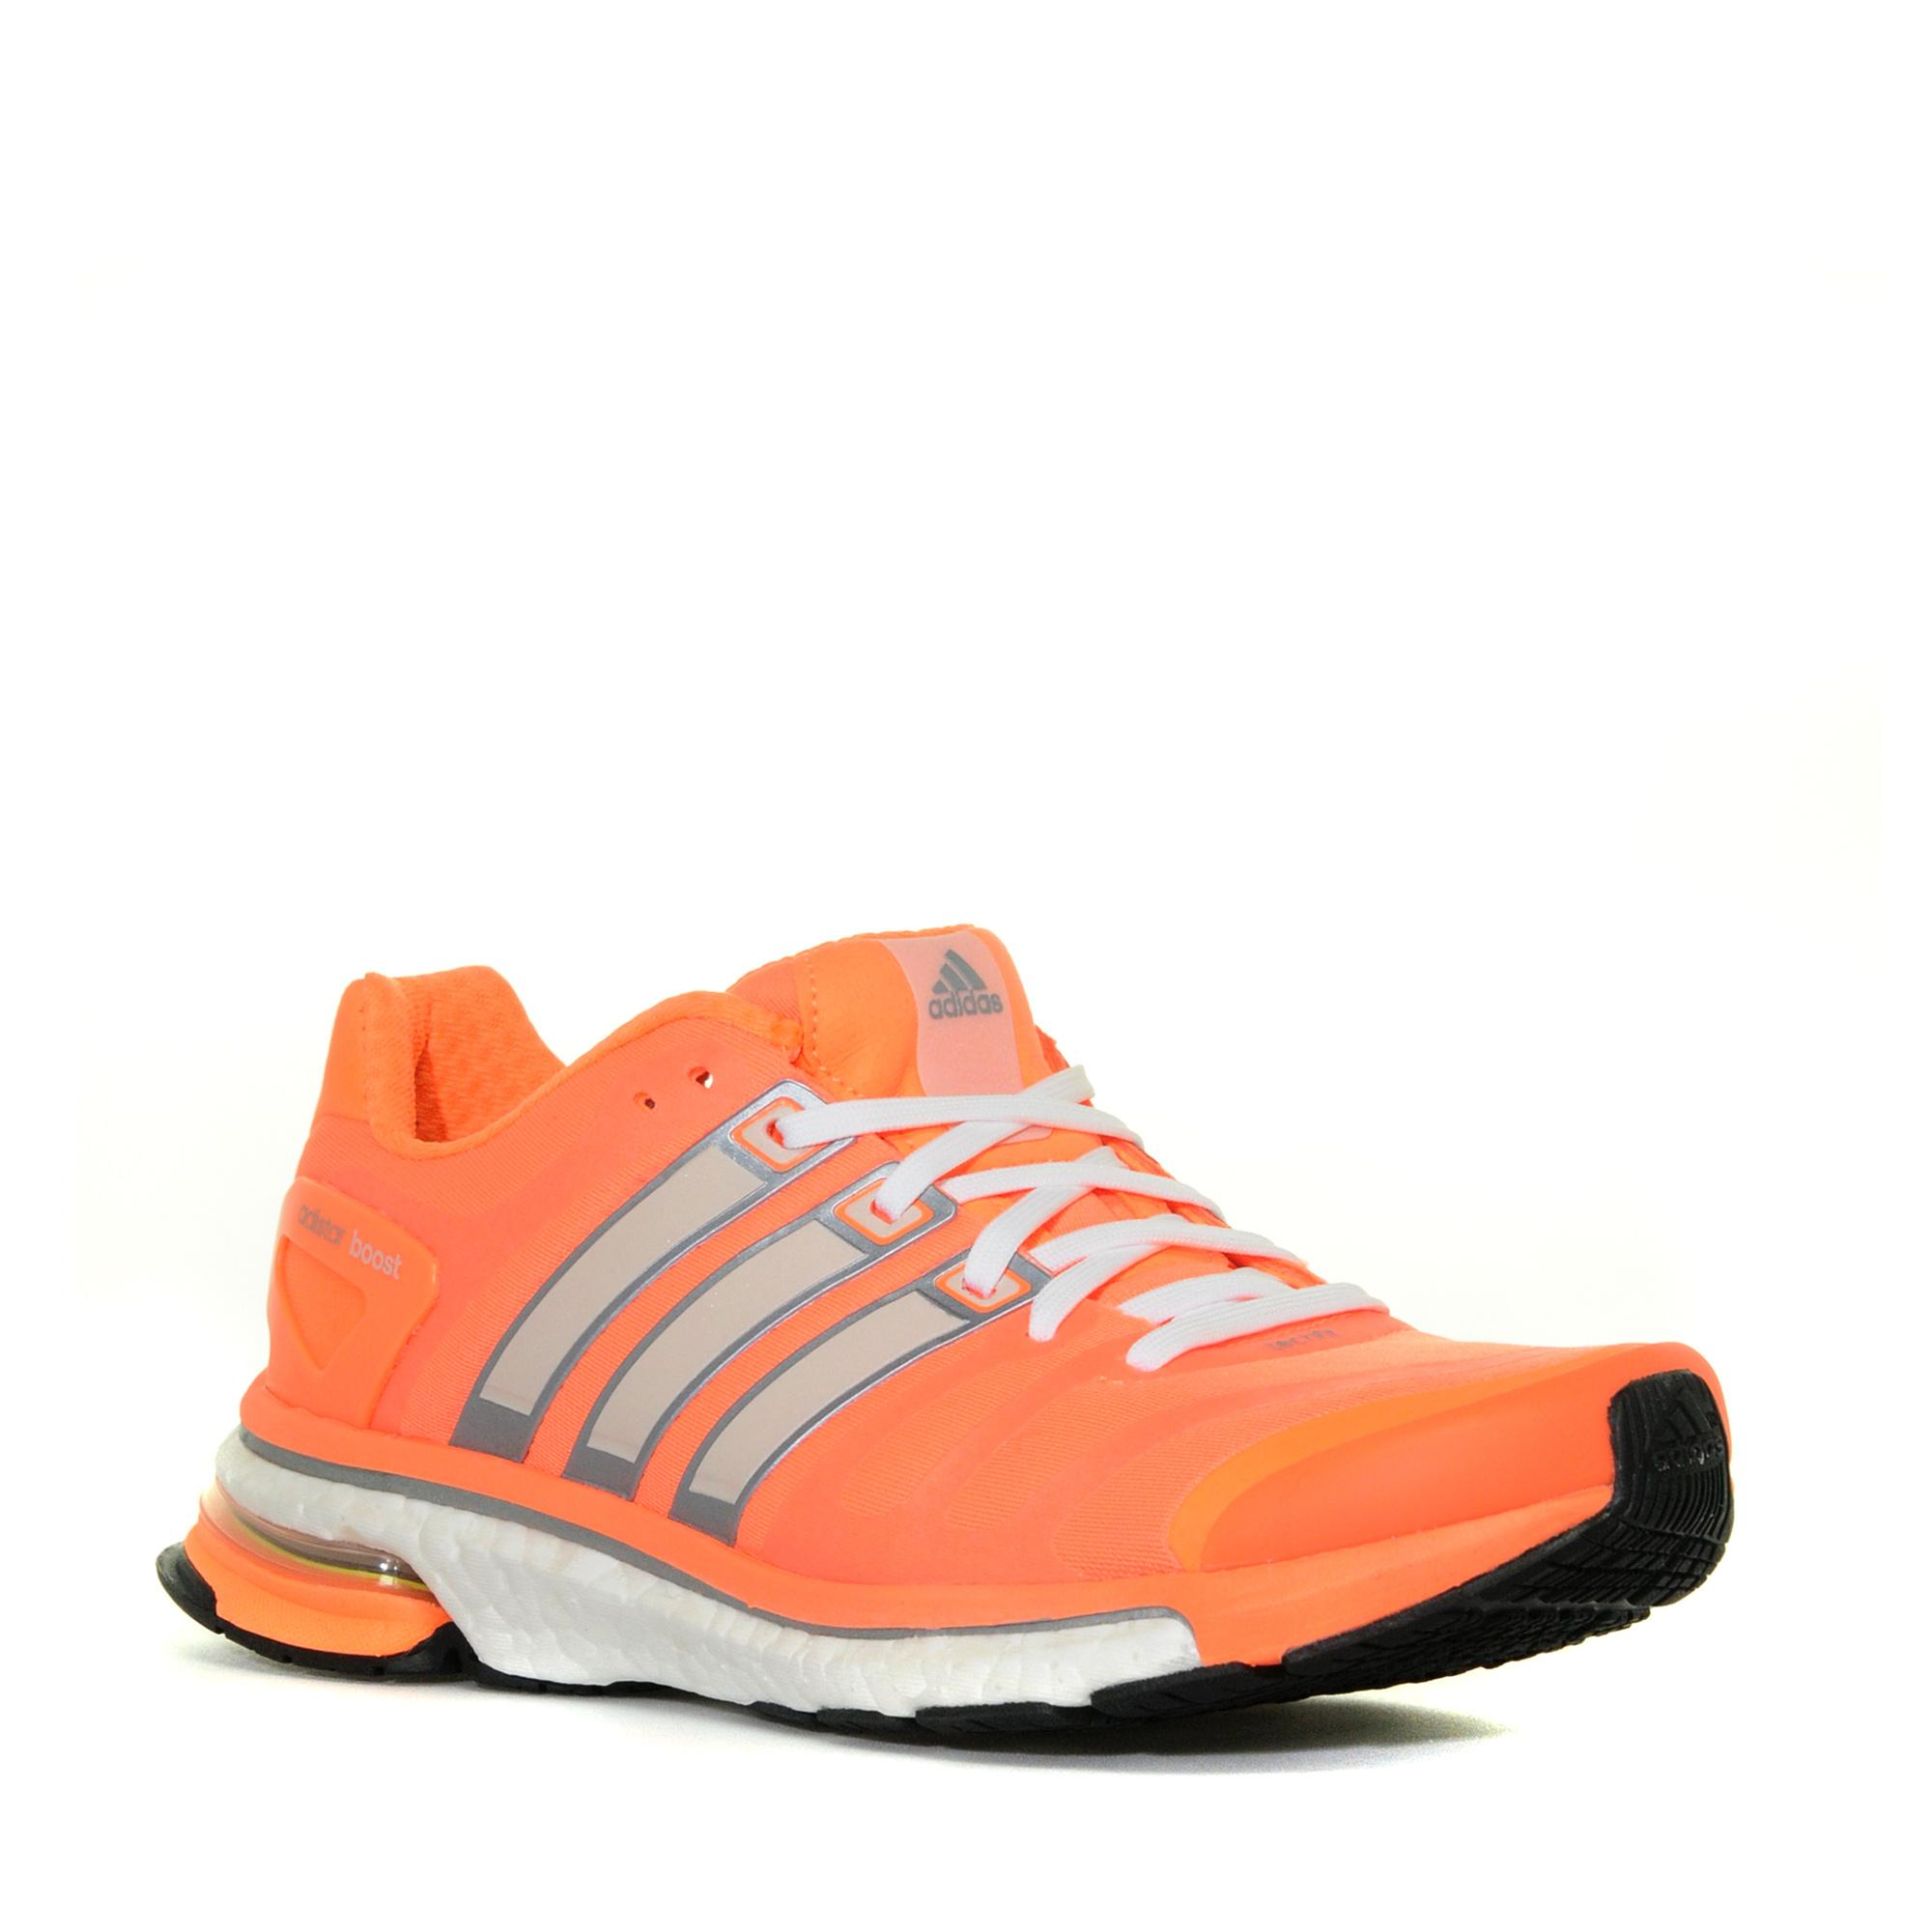 Adidas Womens adistar Boost Shoe Orange